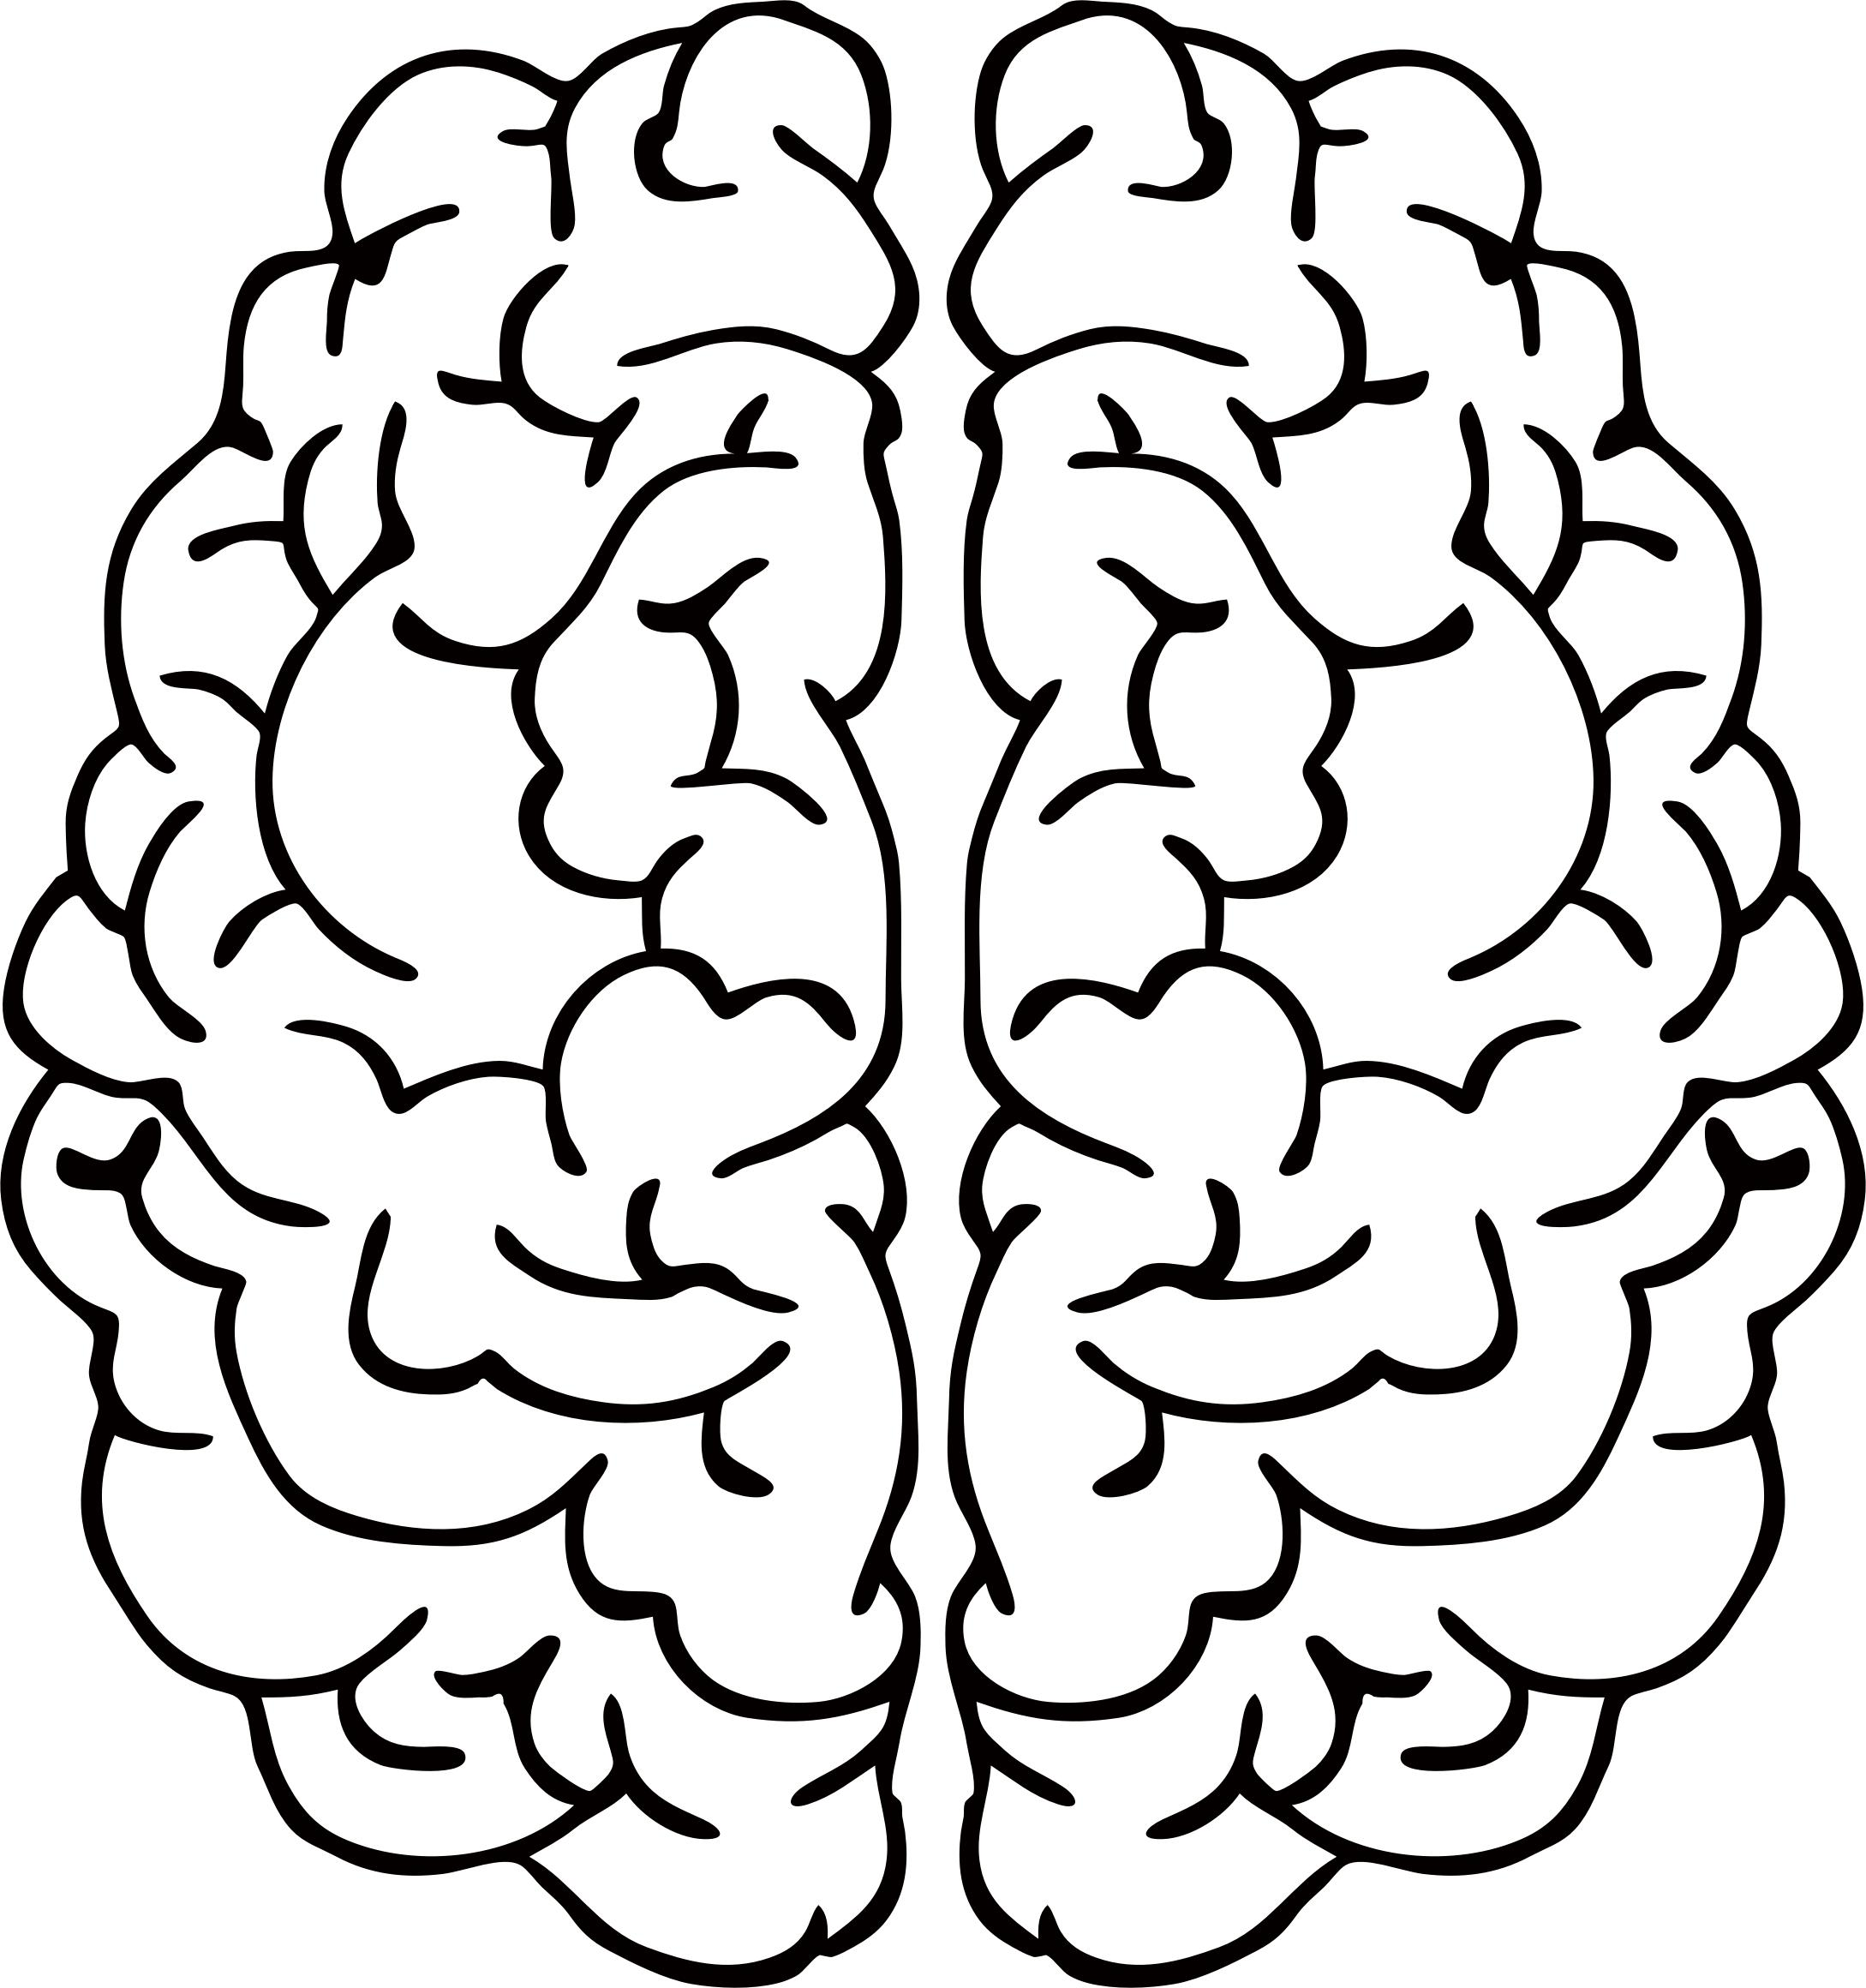 2178x2320 Free Brain Icons Png, Bra N Images